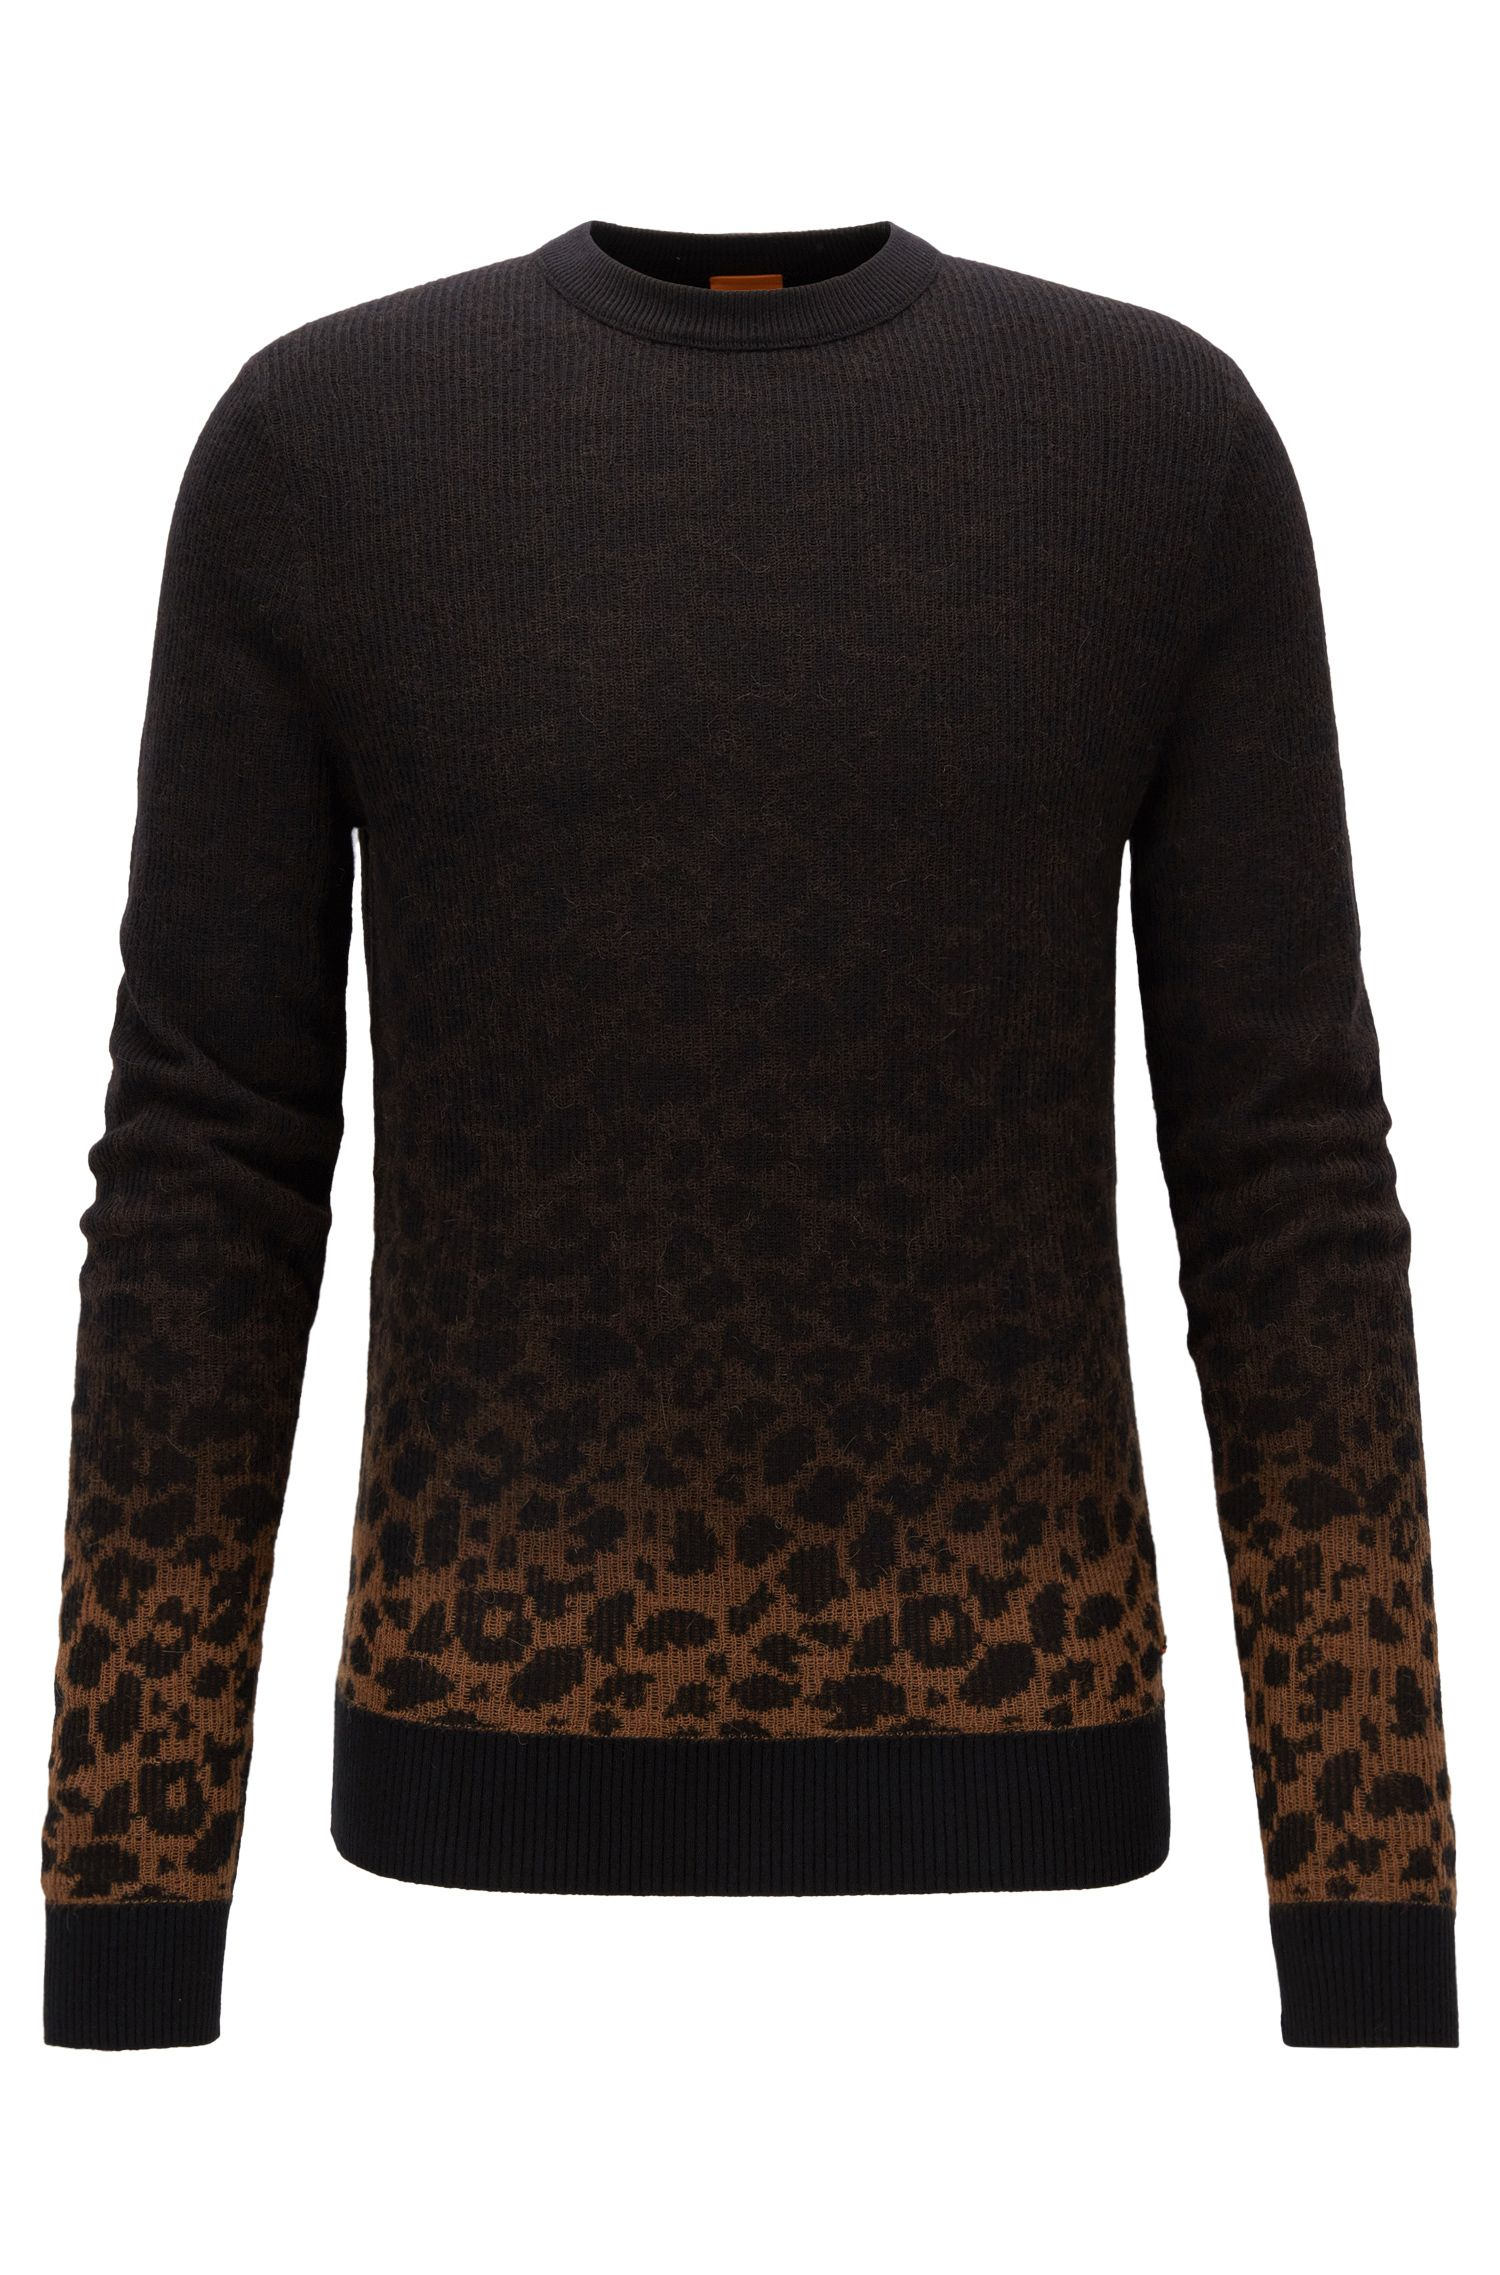 Dégradé sweater in a leopard-pattern jacquard